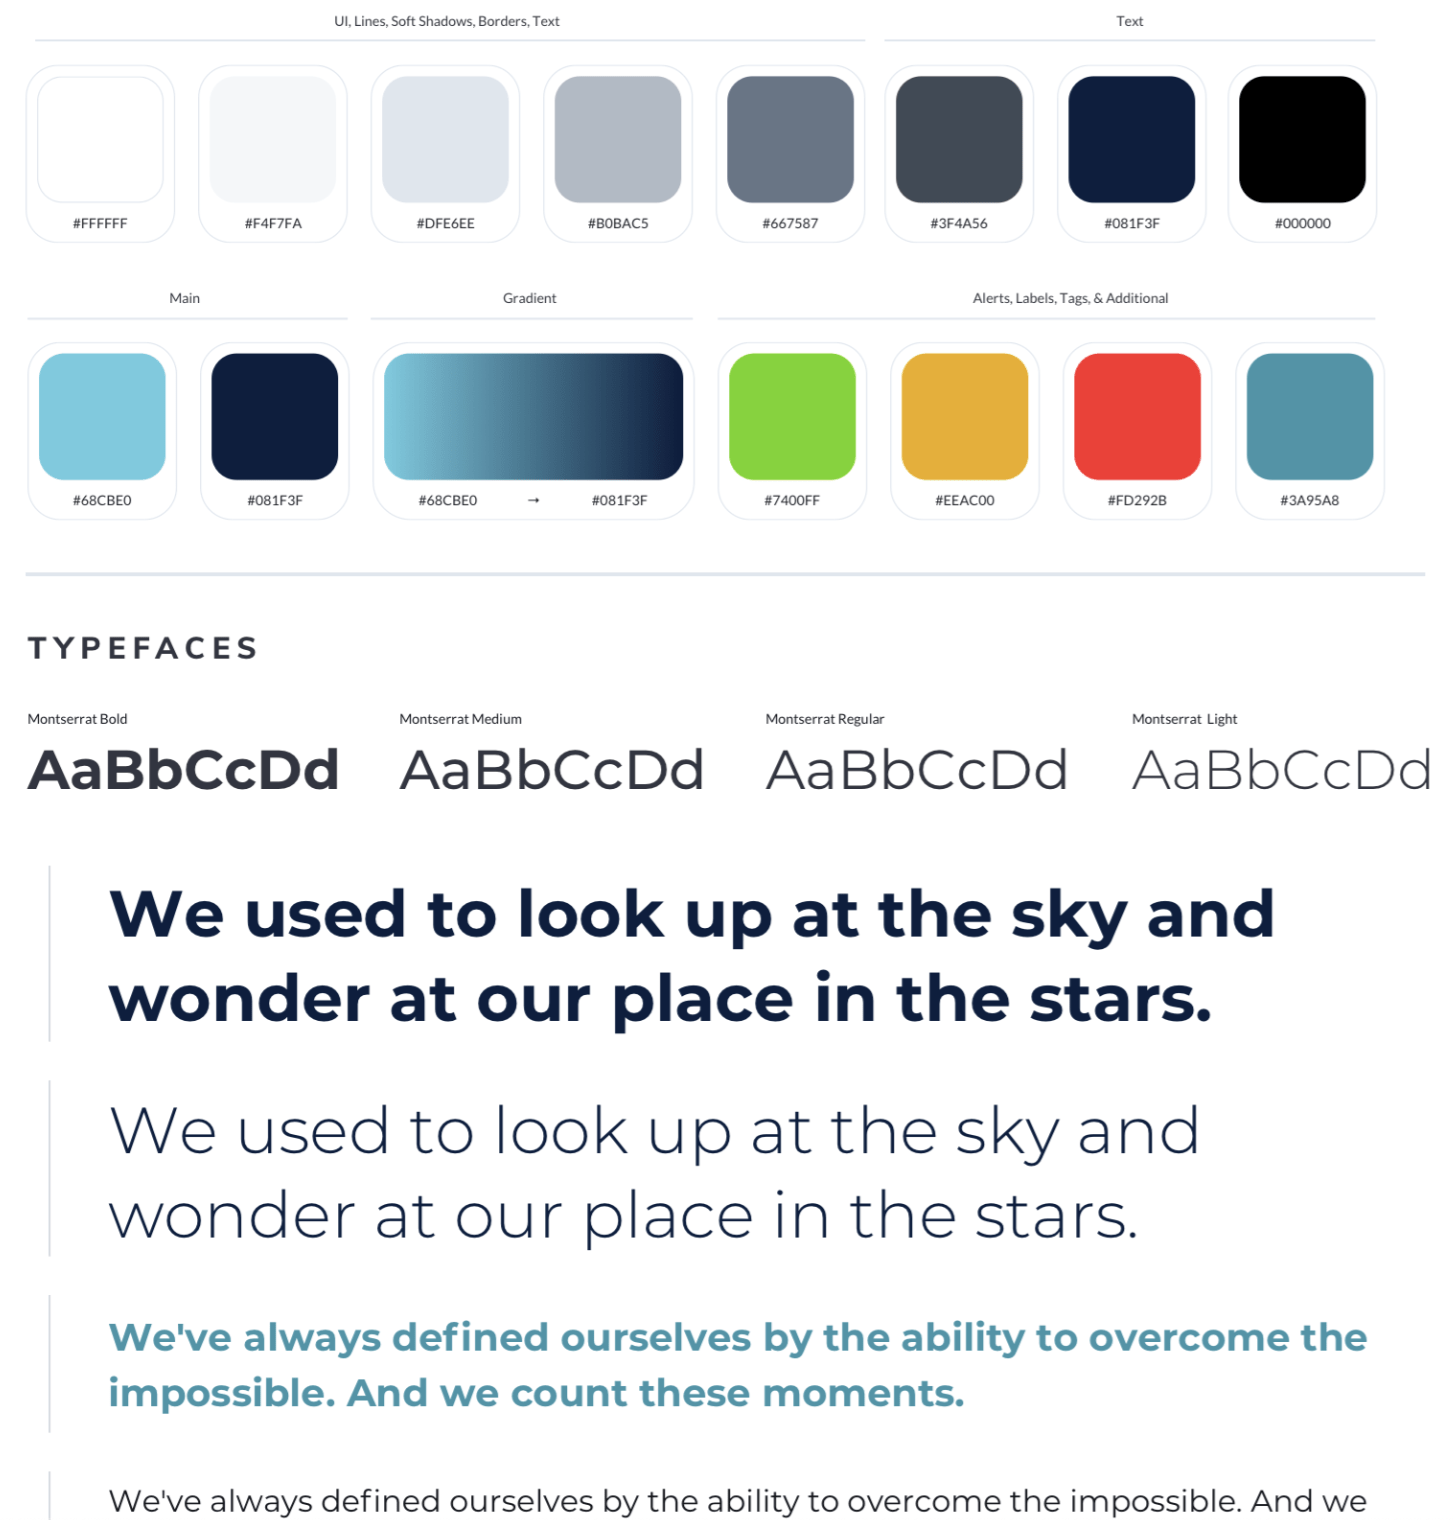 Chart of Digital Styles typefaces text and colors for the Springstone app